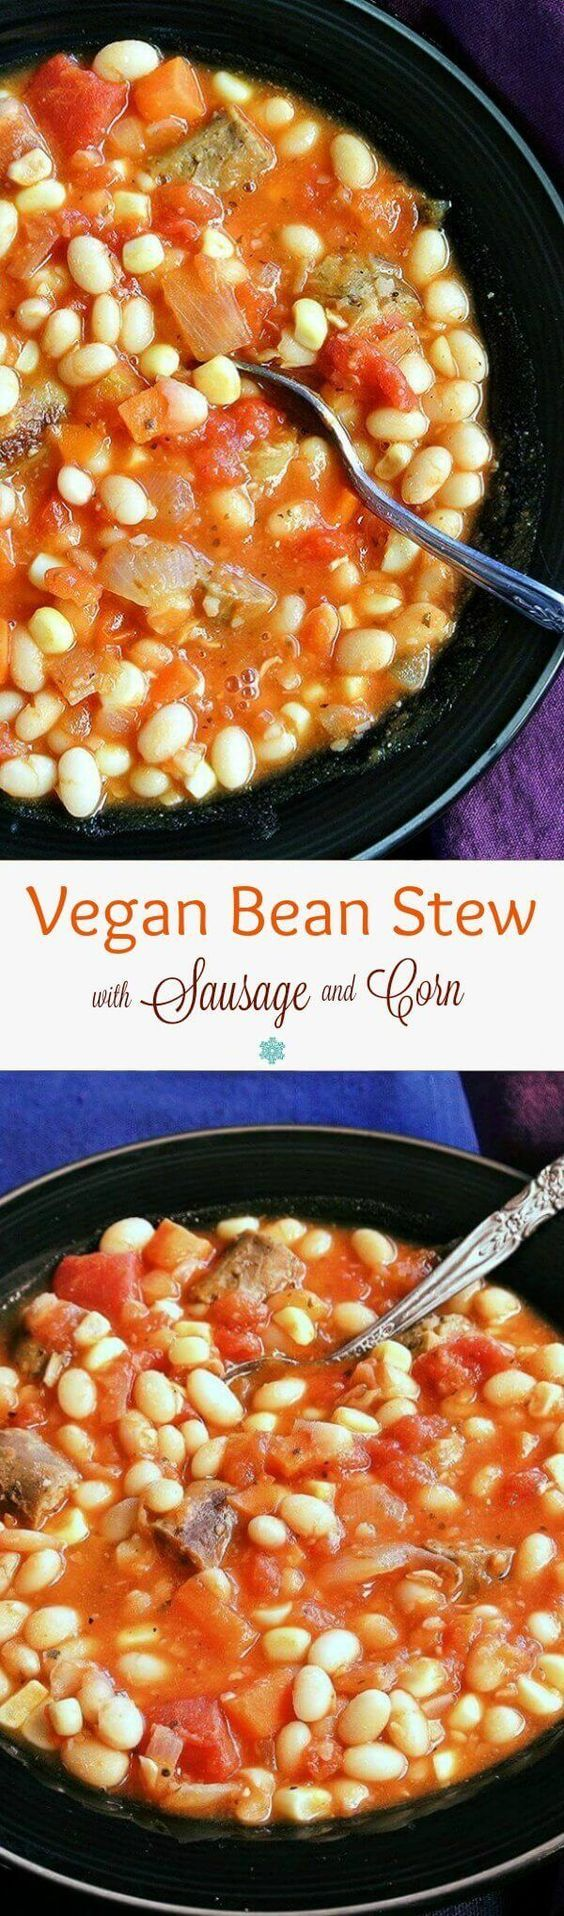 Vegan Bean Stew is a comfort food favorite. The stew has fresh carrots and corn off the cob. To make it traditional there's also plant based sausage. ~ veganinthefreezer...